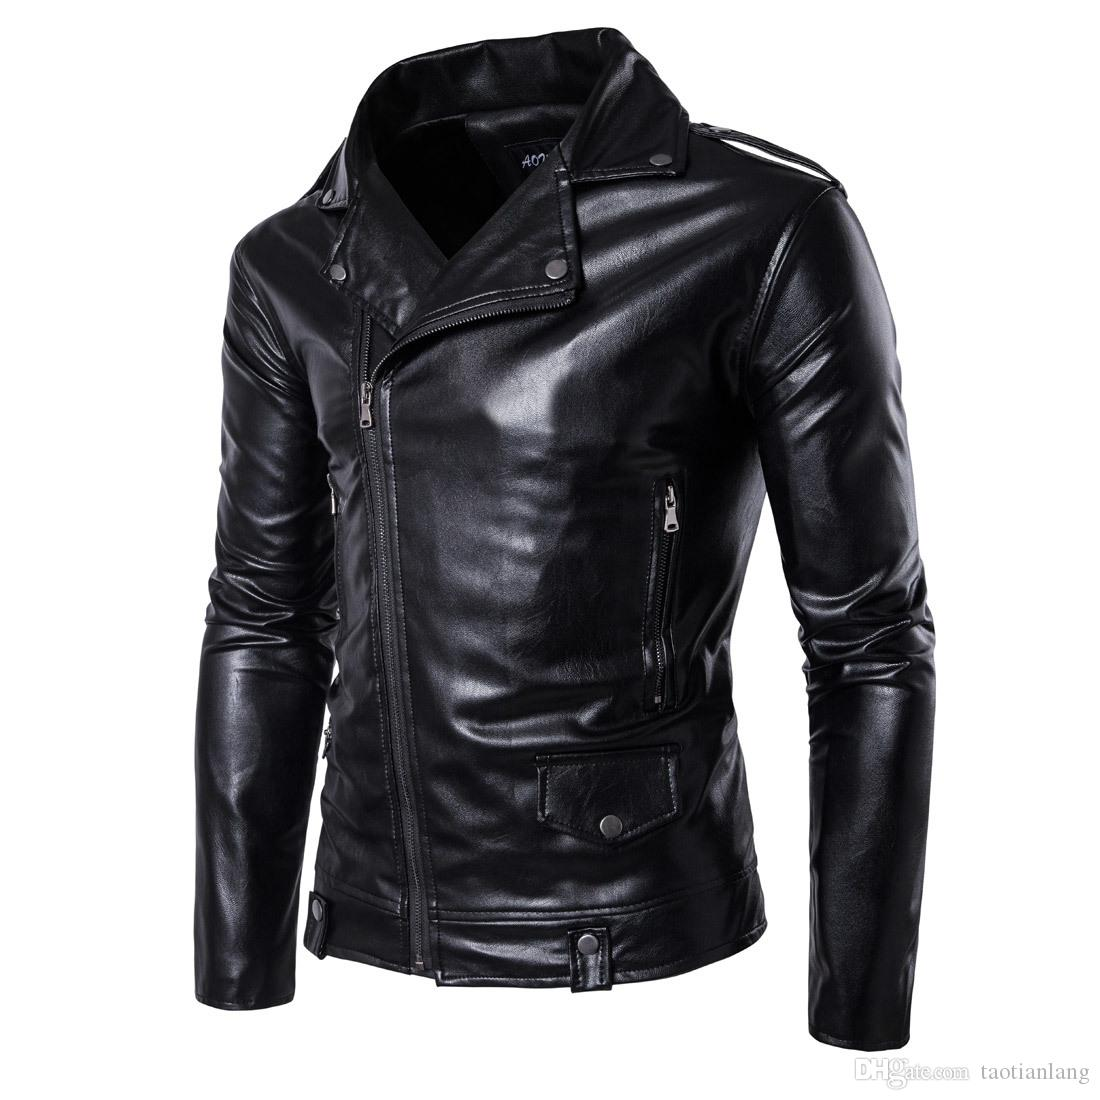 Winter Bomber Jackets For Men Outdoor PU Brown Black Winter Long Motorcycle Shell leather Fold Sleeve Denim Mens Jackets Outerwear T170721